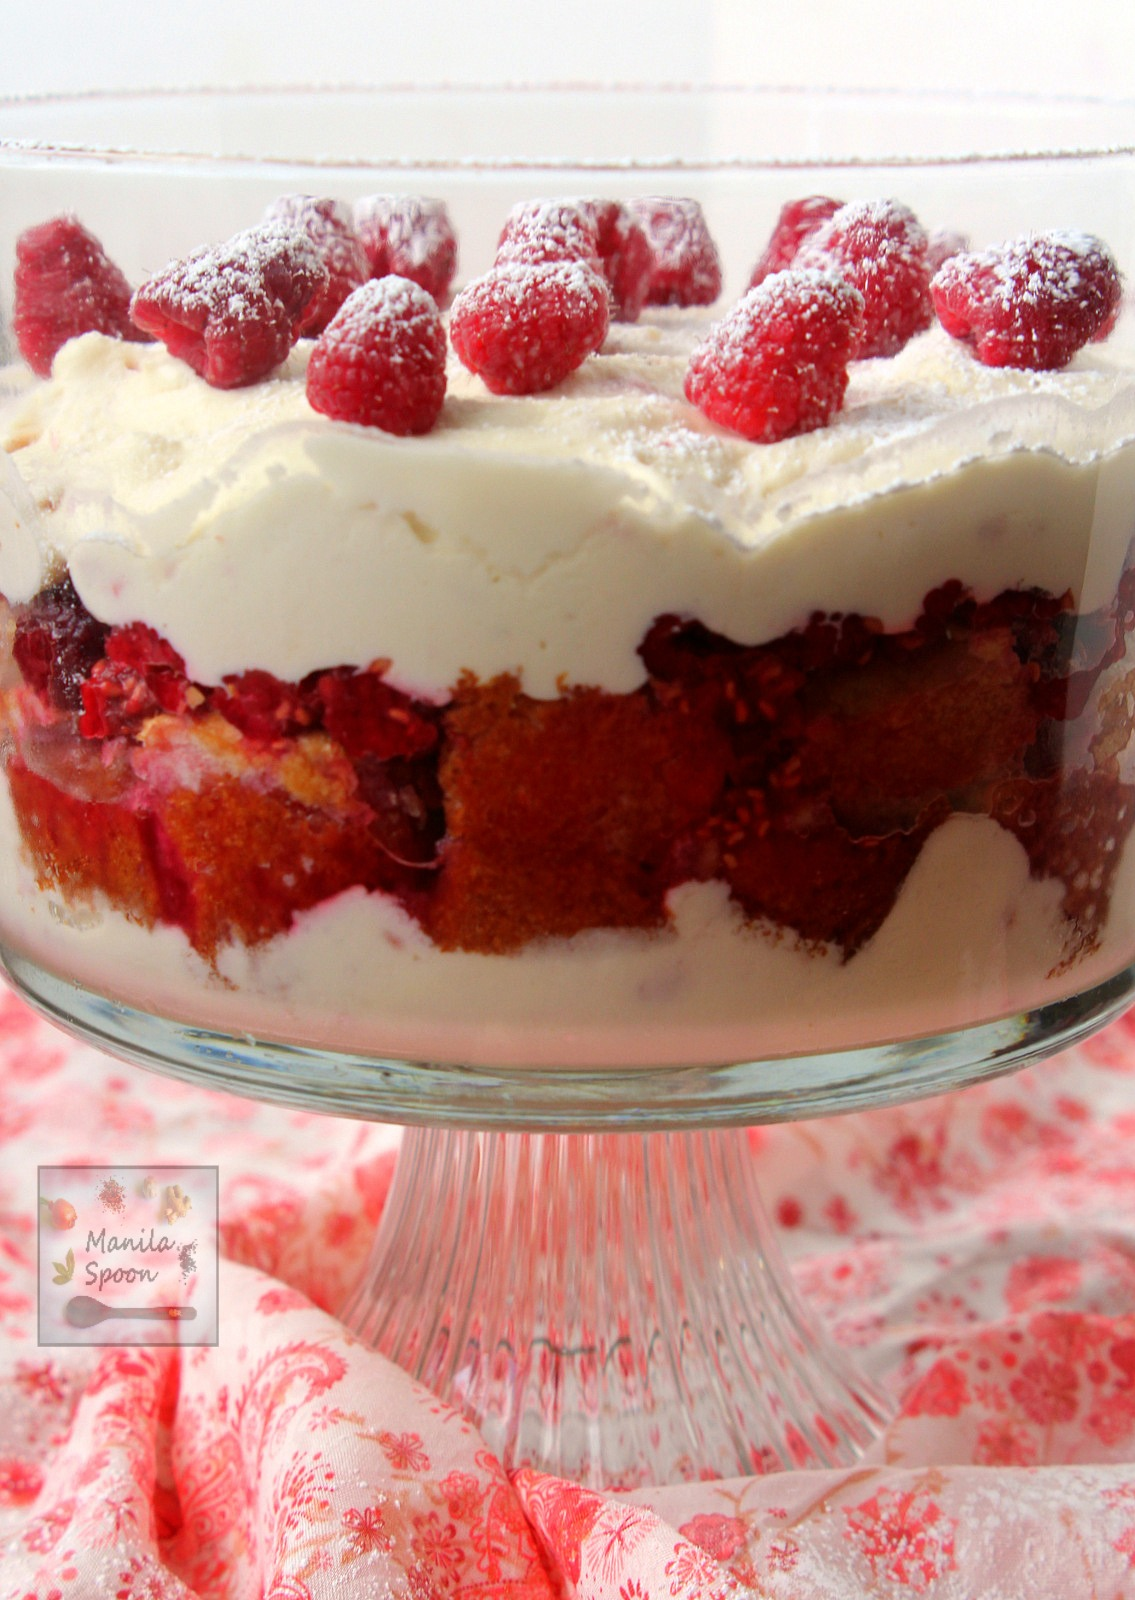 No Bake White Chocolate Mousse and Raspberry Trifle